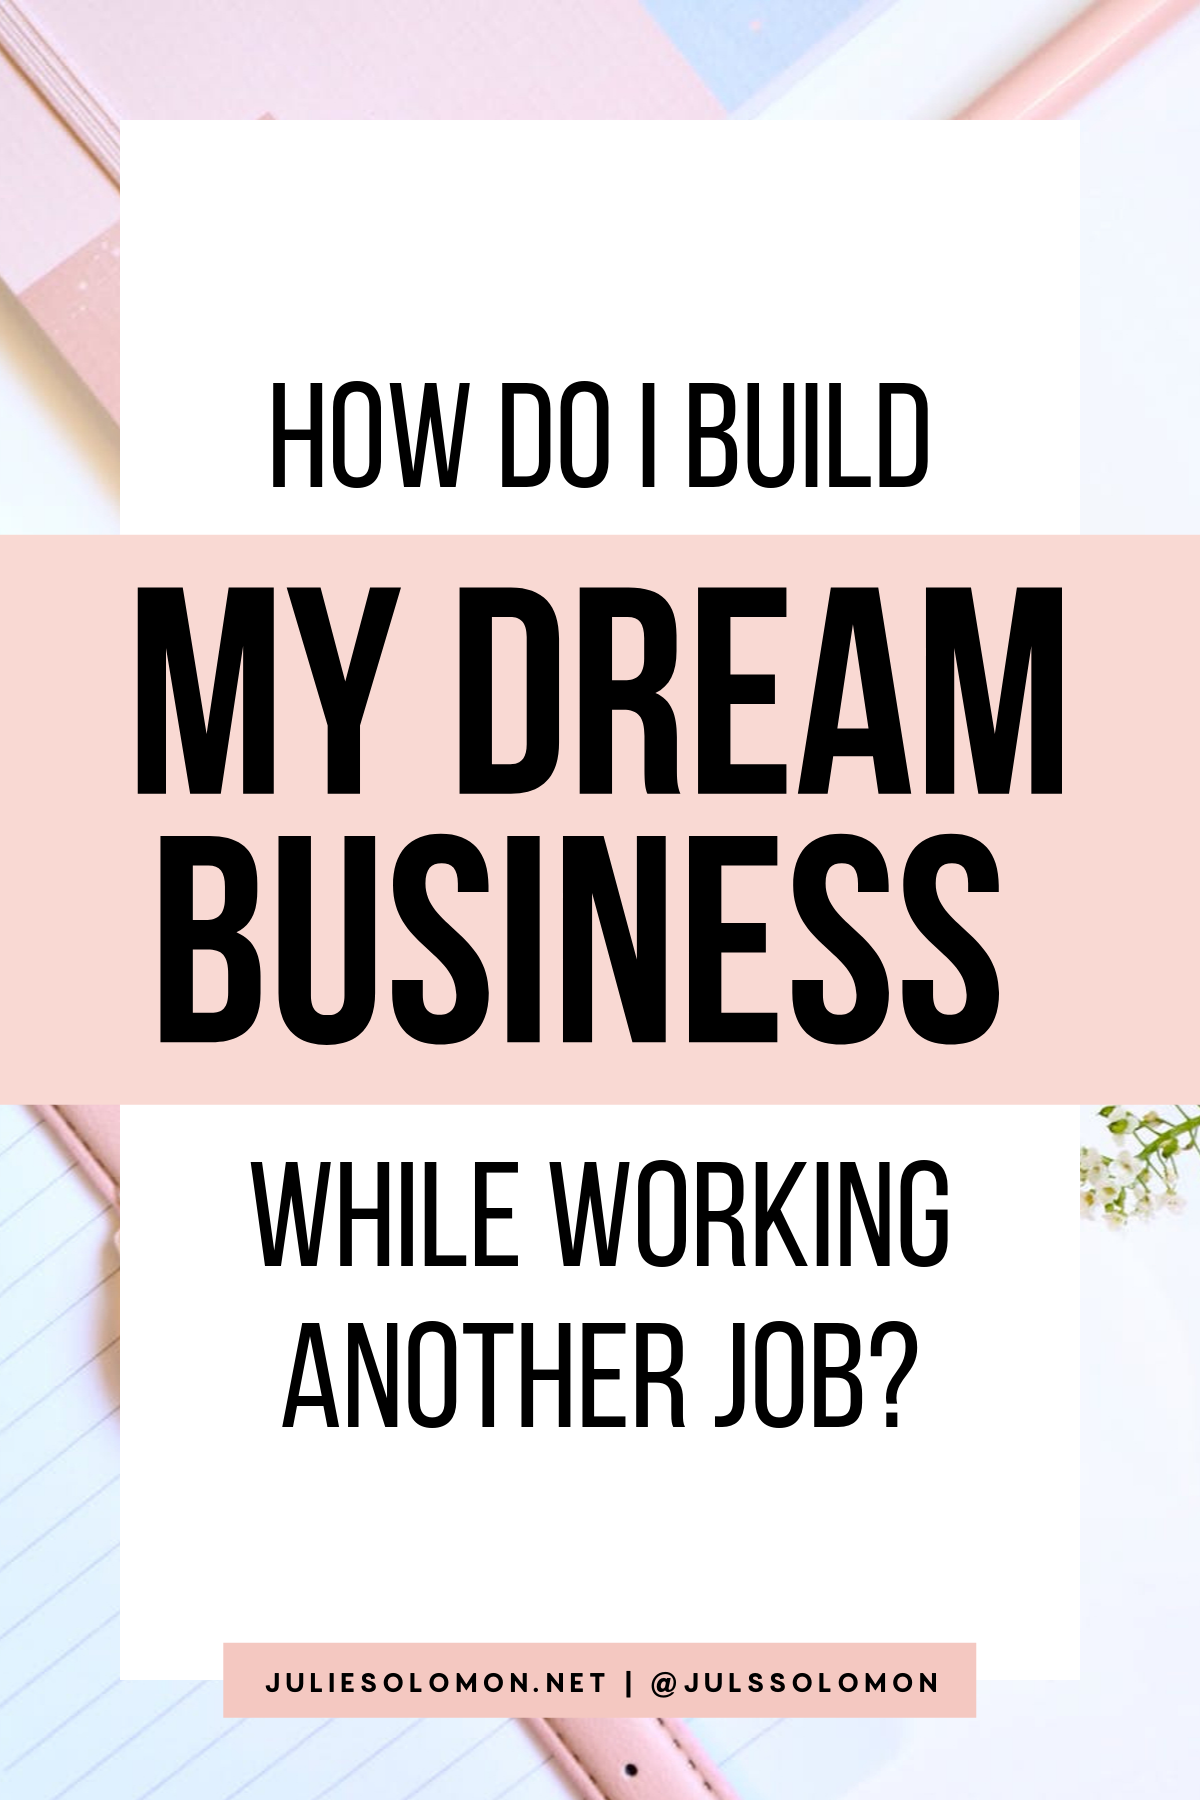 043: How Do I Build My Dream Business While Working Another Job? — with Julie Solomon